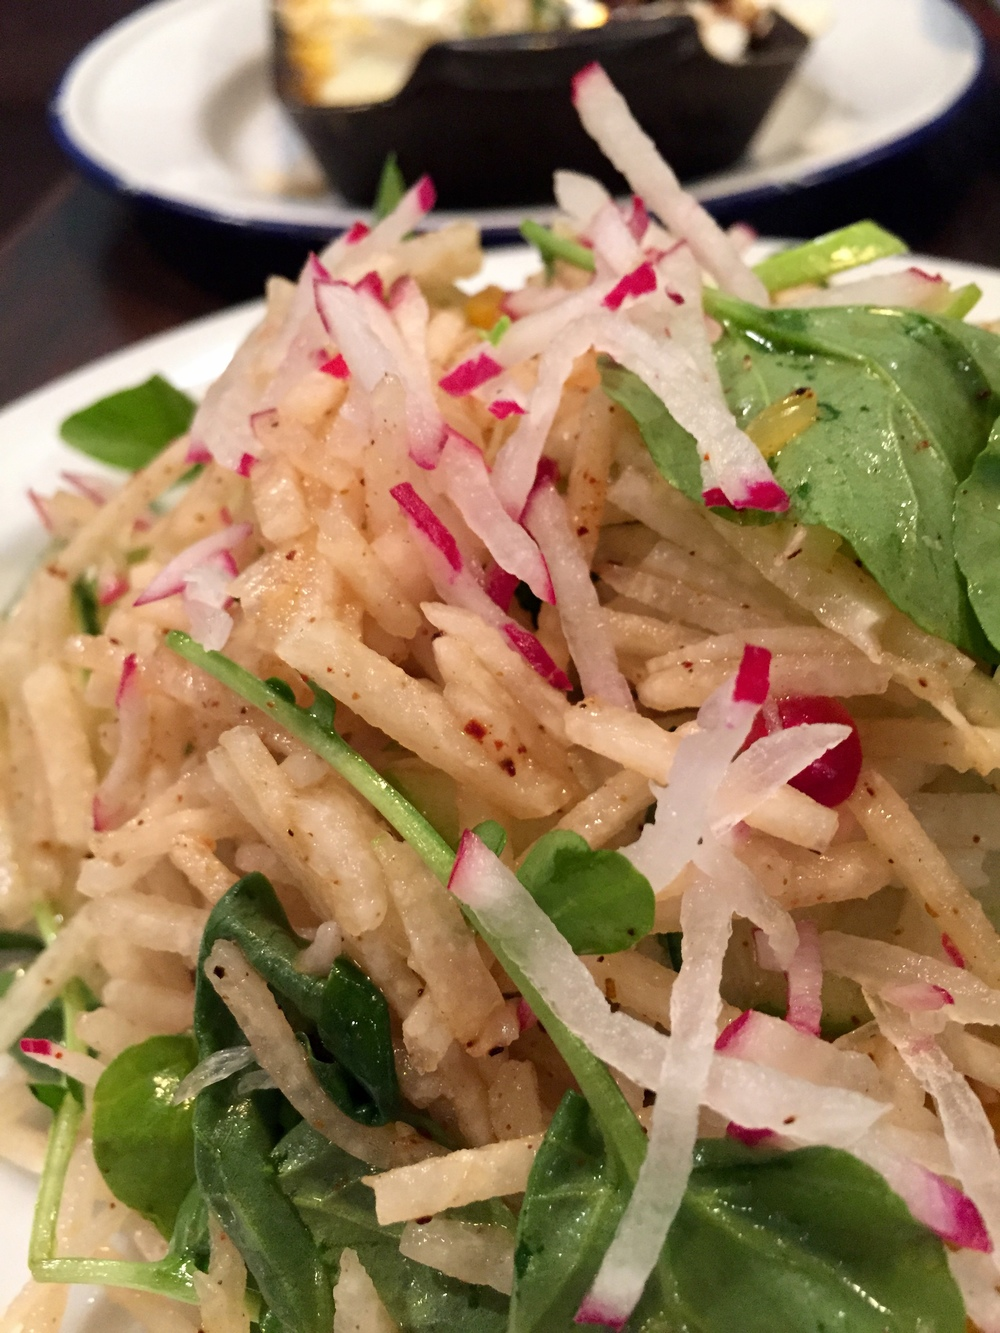 Jicama Salad with radish, pomegranate, cucumber, and p.g. spice.